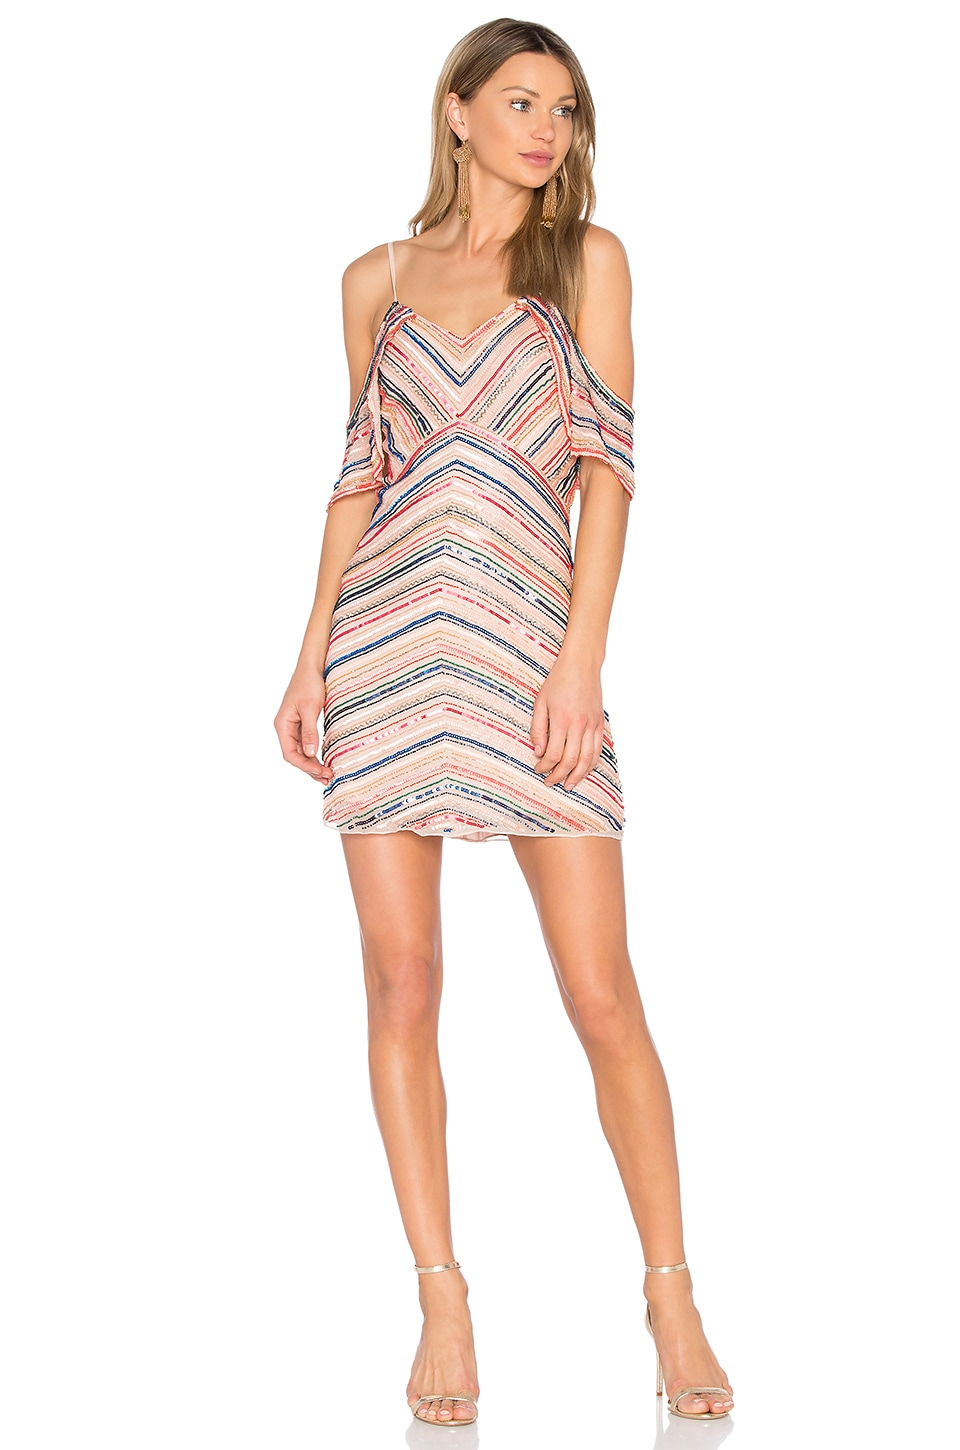 Parker Jerry Dress in Multi